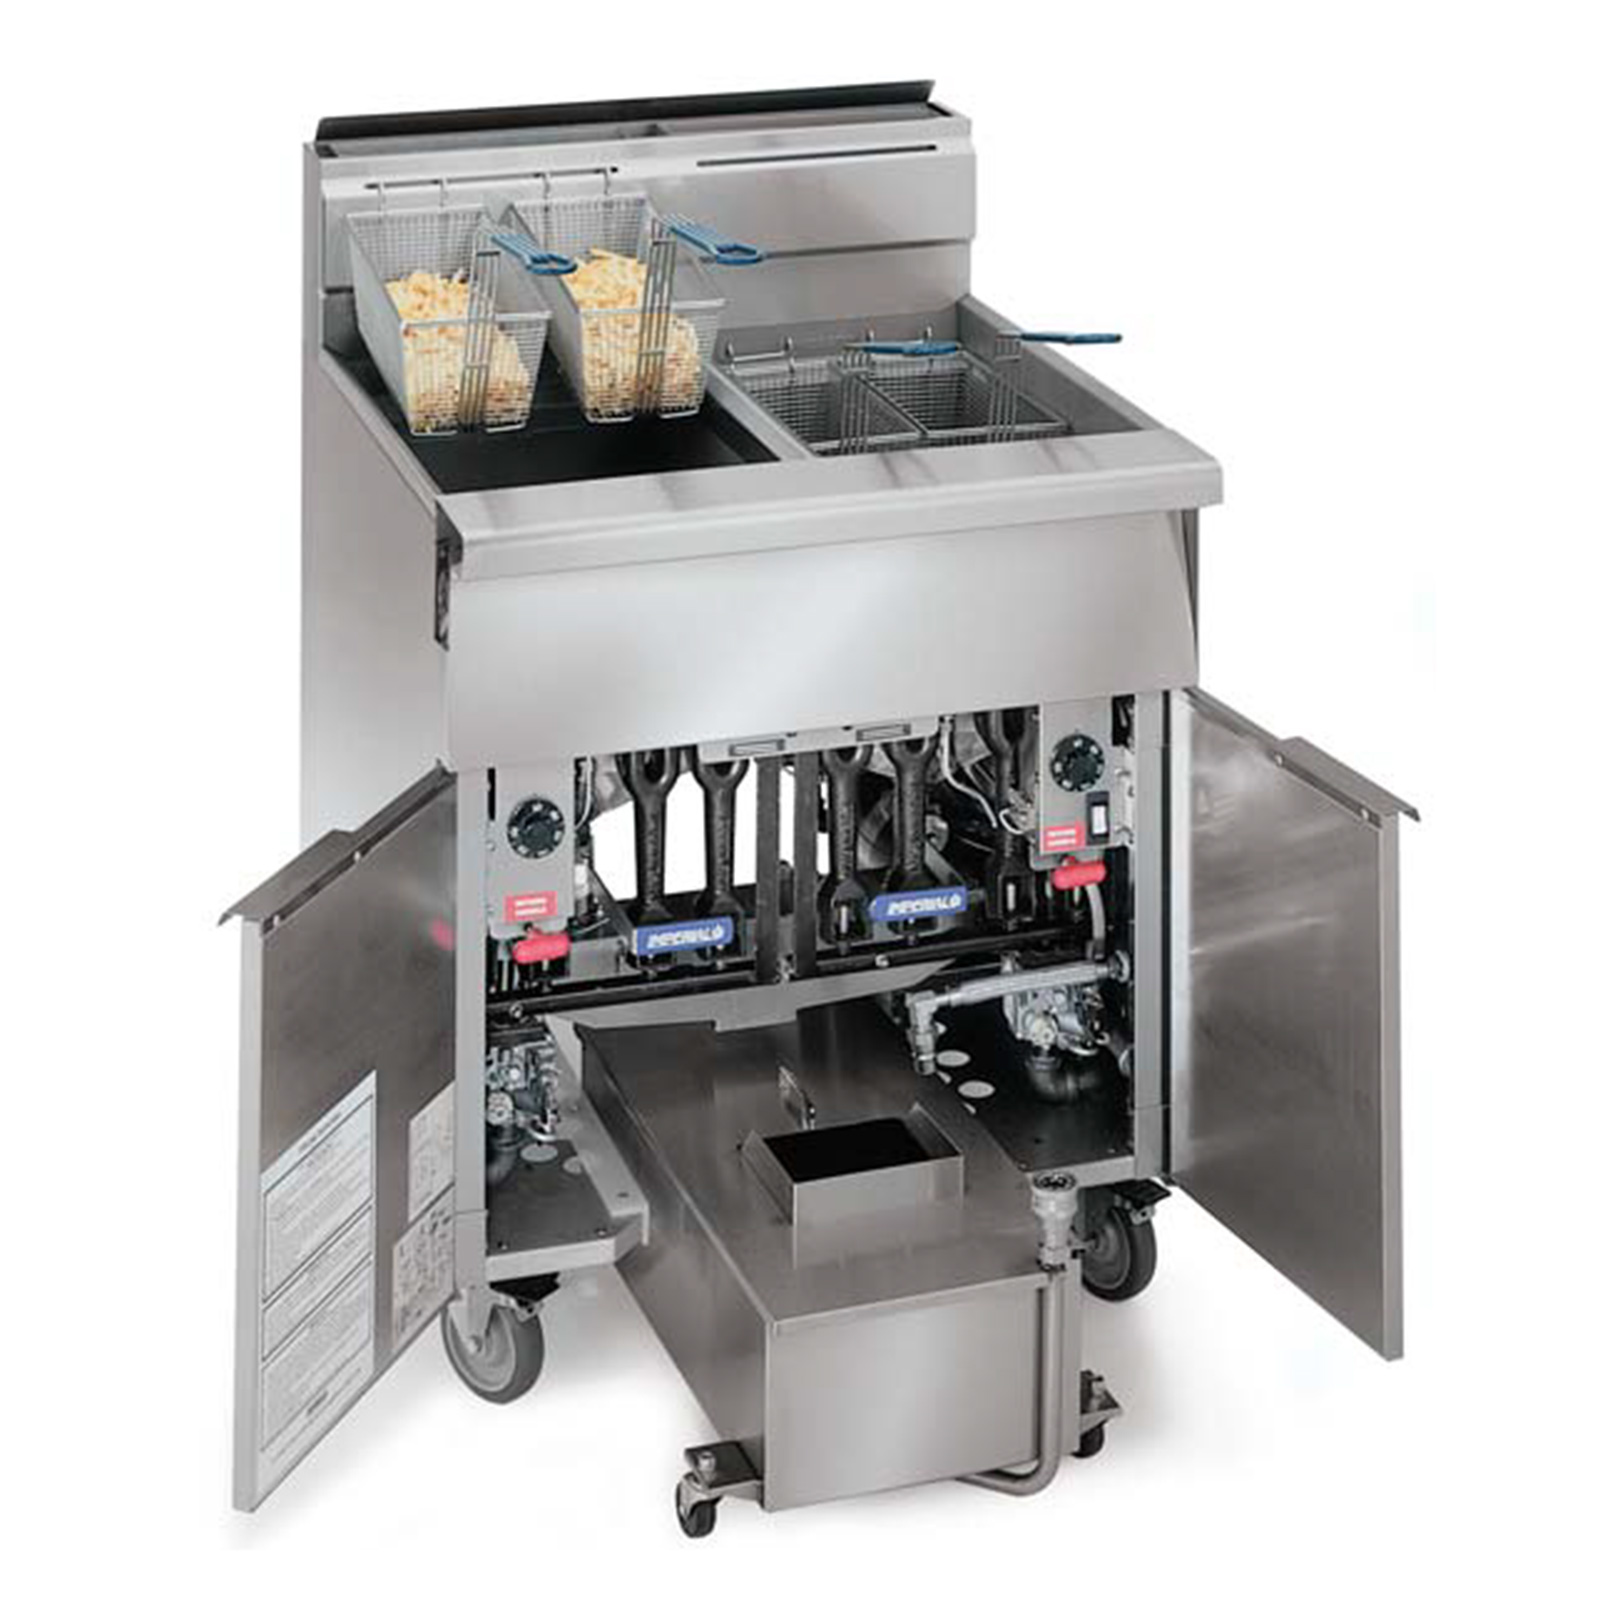 Imperial IHRSP450T fryer, gas, multiple battery